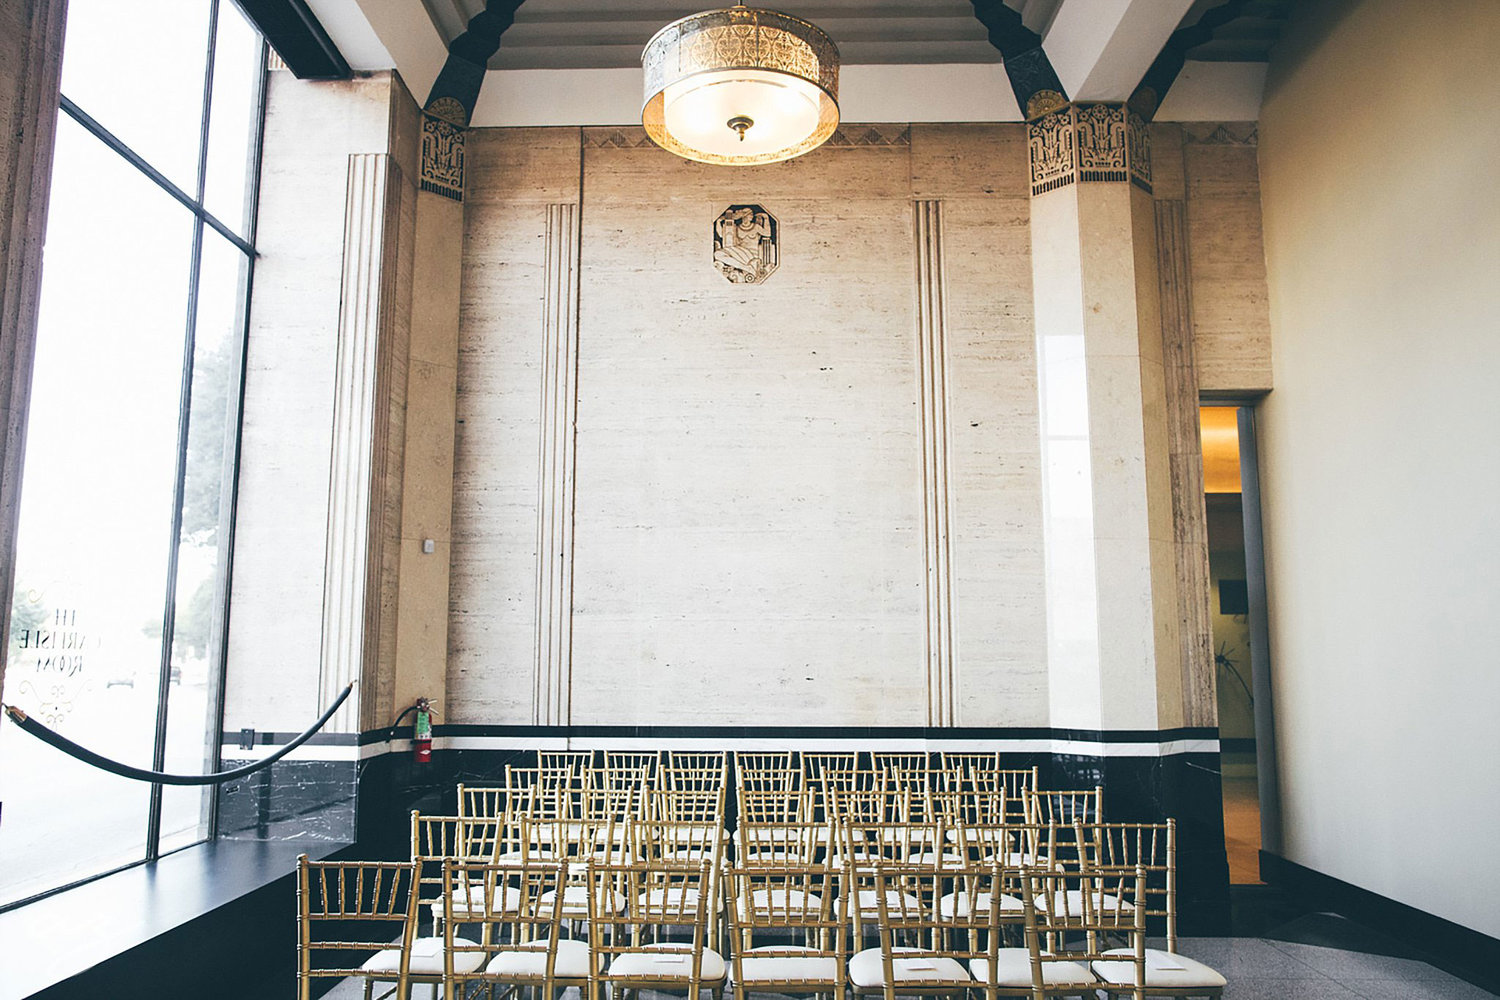 The carlisle room wedding in dallas tx emily josh carlisle room wedding ceremony chairs mozeypictures Images